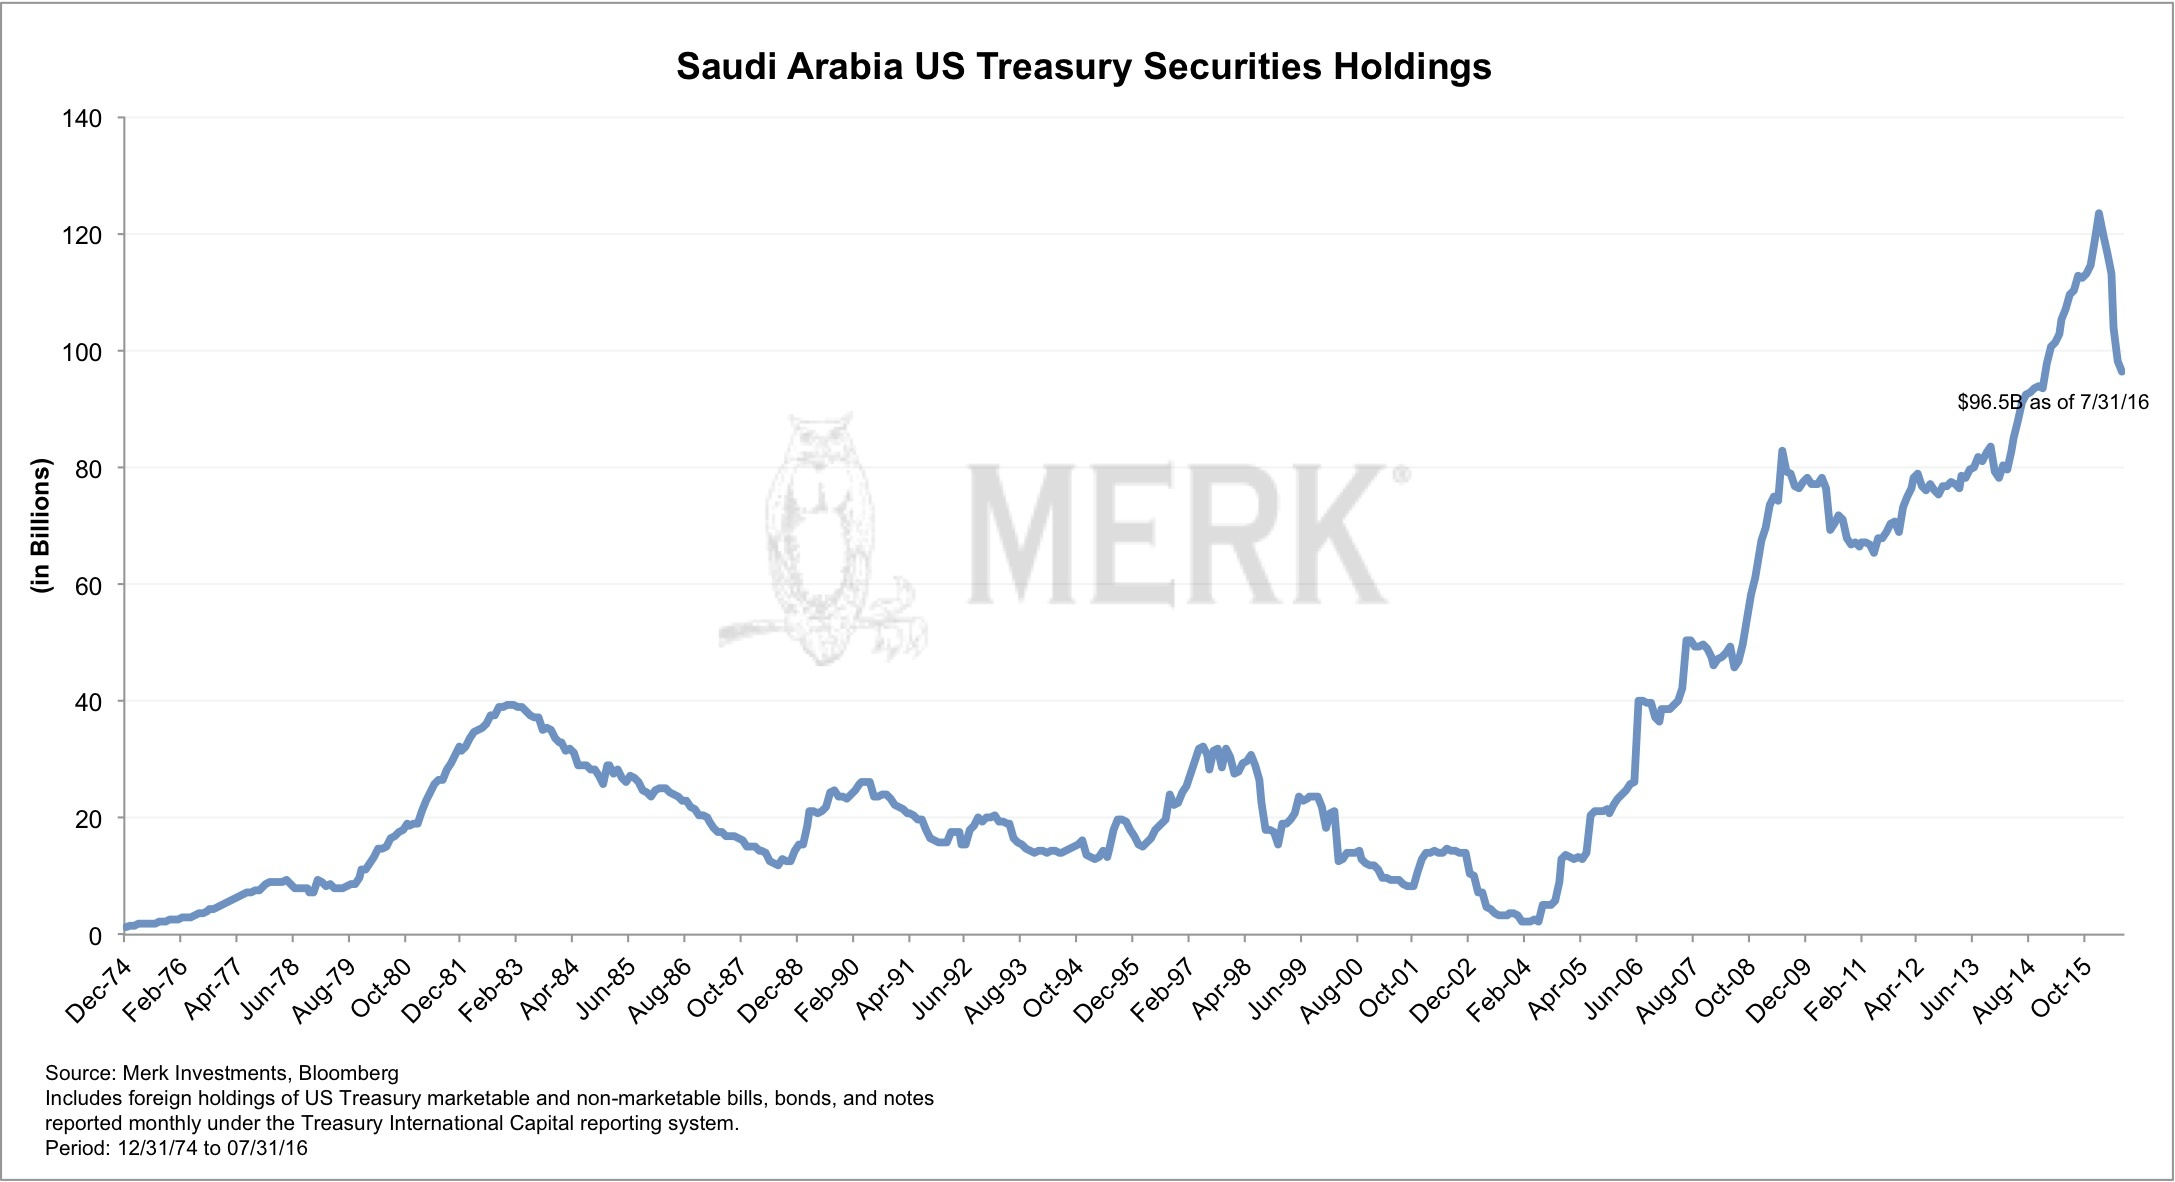 Saudi Arabia US treasury holdings